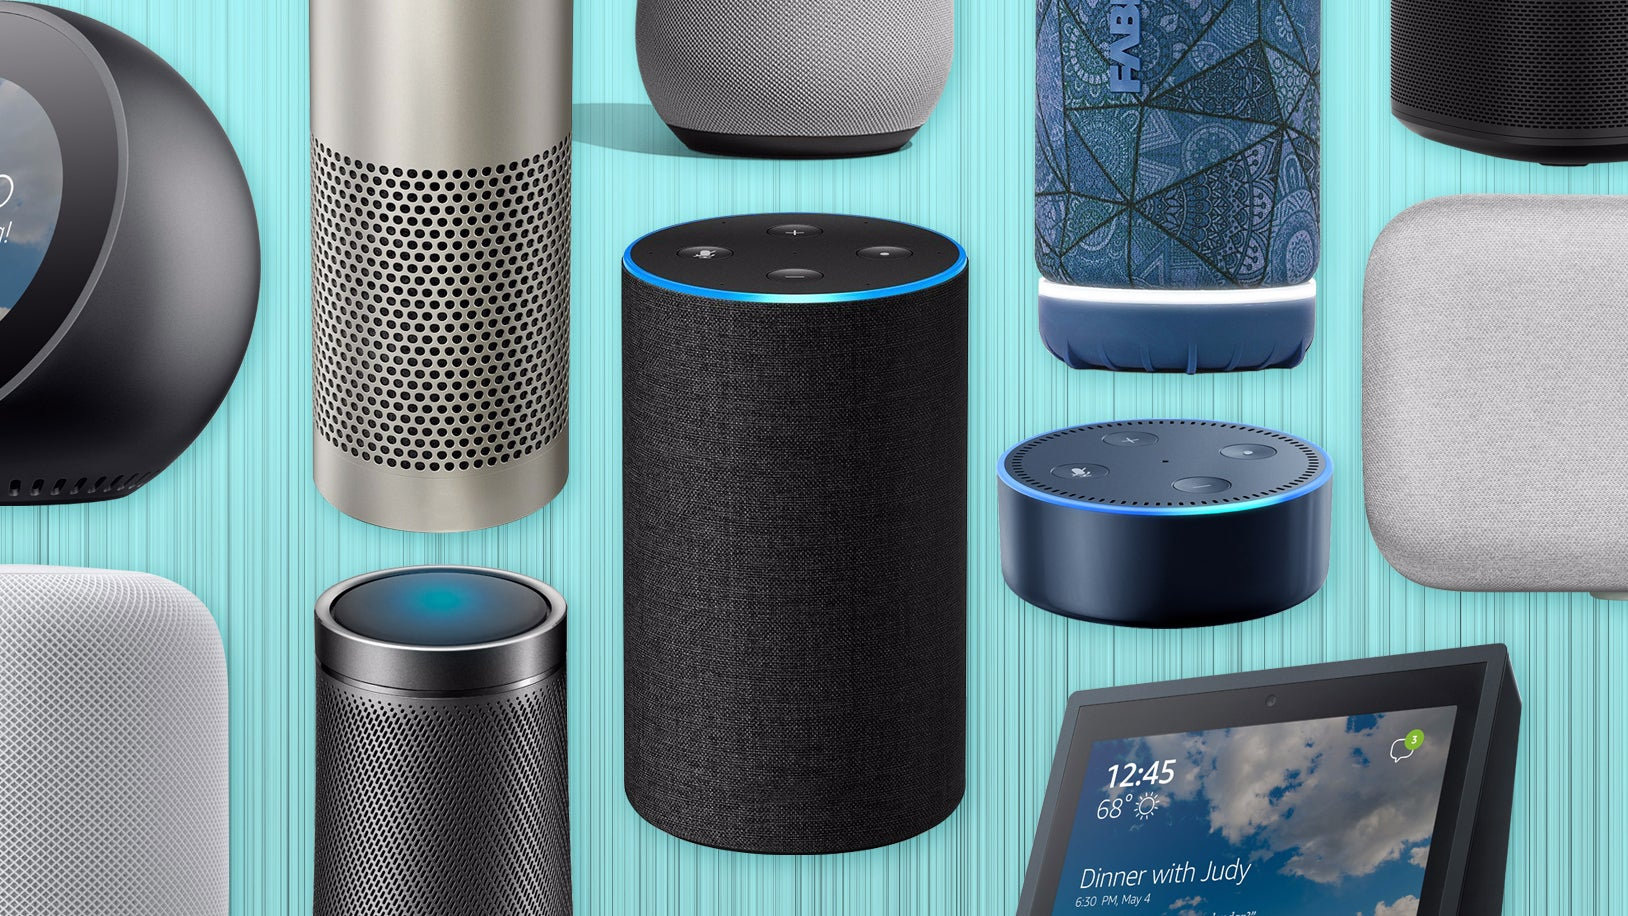 Kết quả hình ảnh cho Best smart speakers: Which delivers the best combination of digital assistant and audio performance?